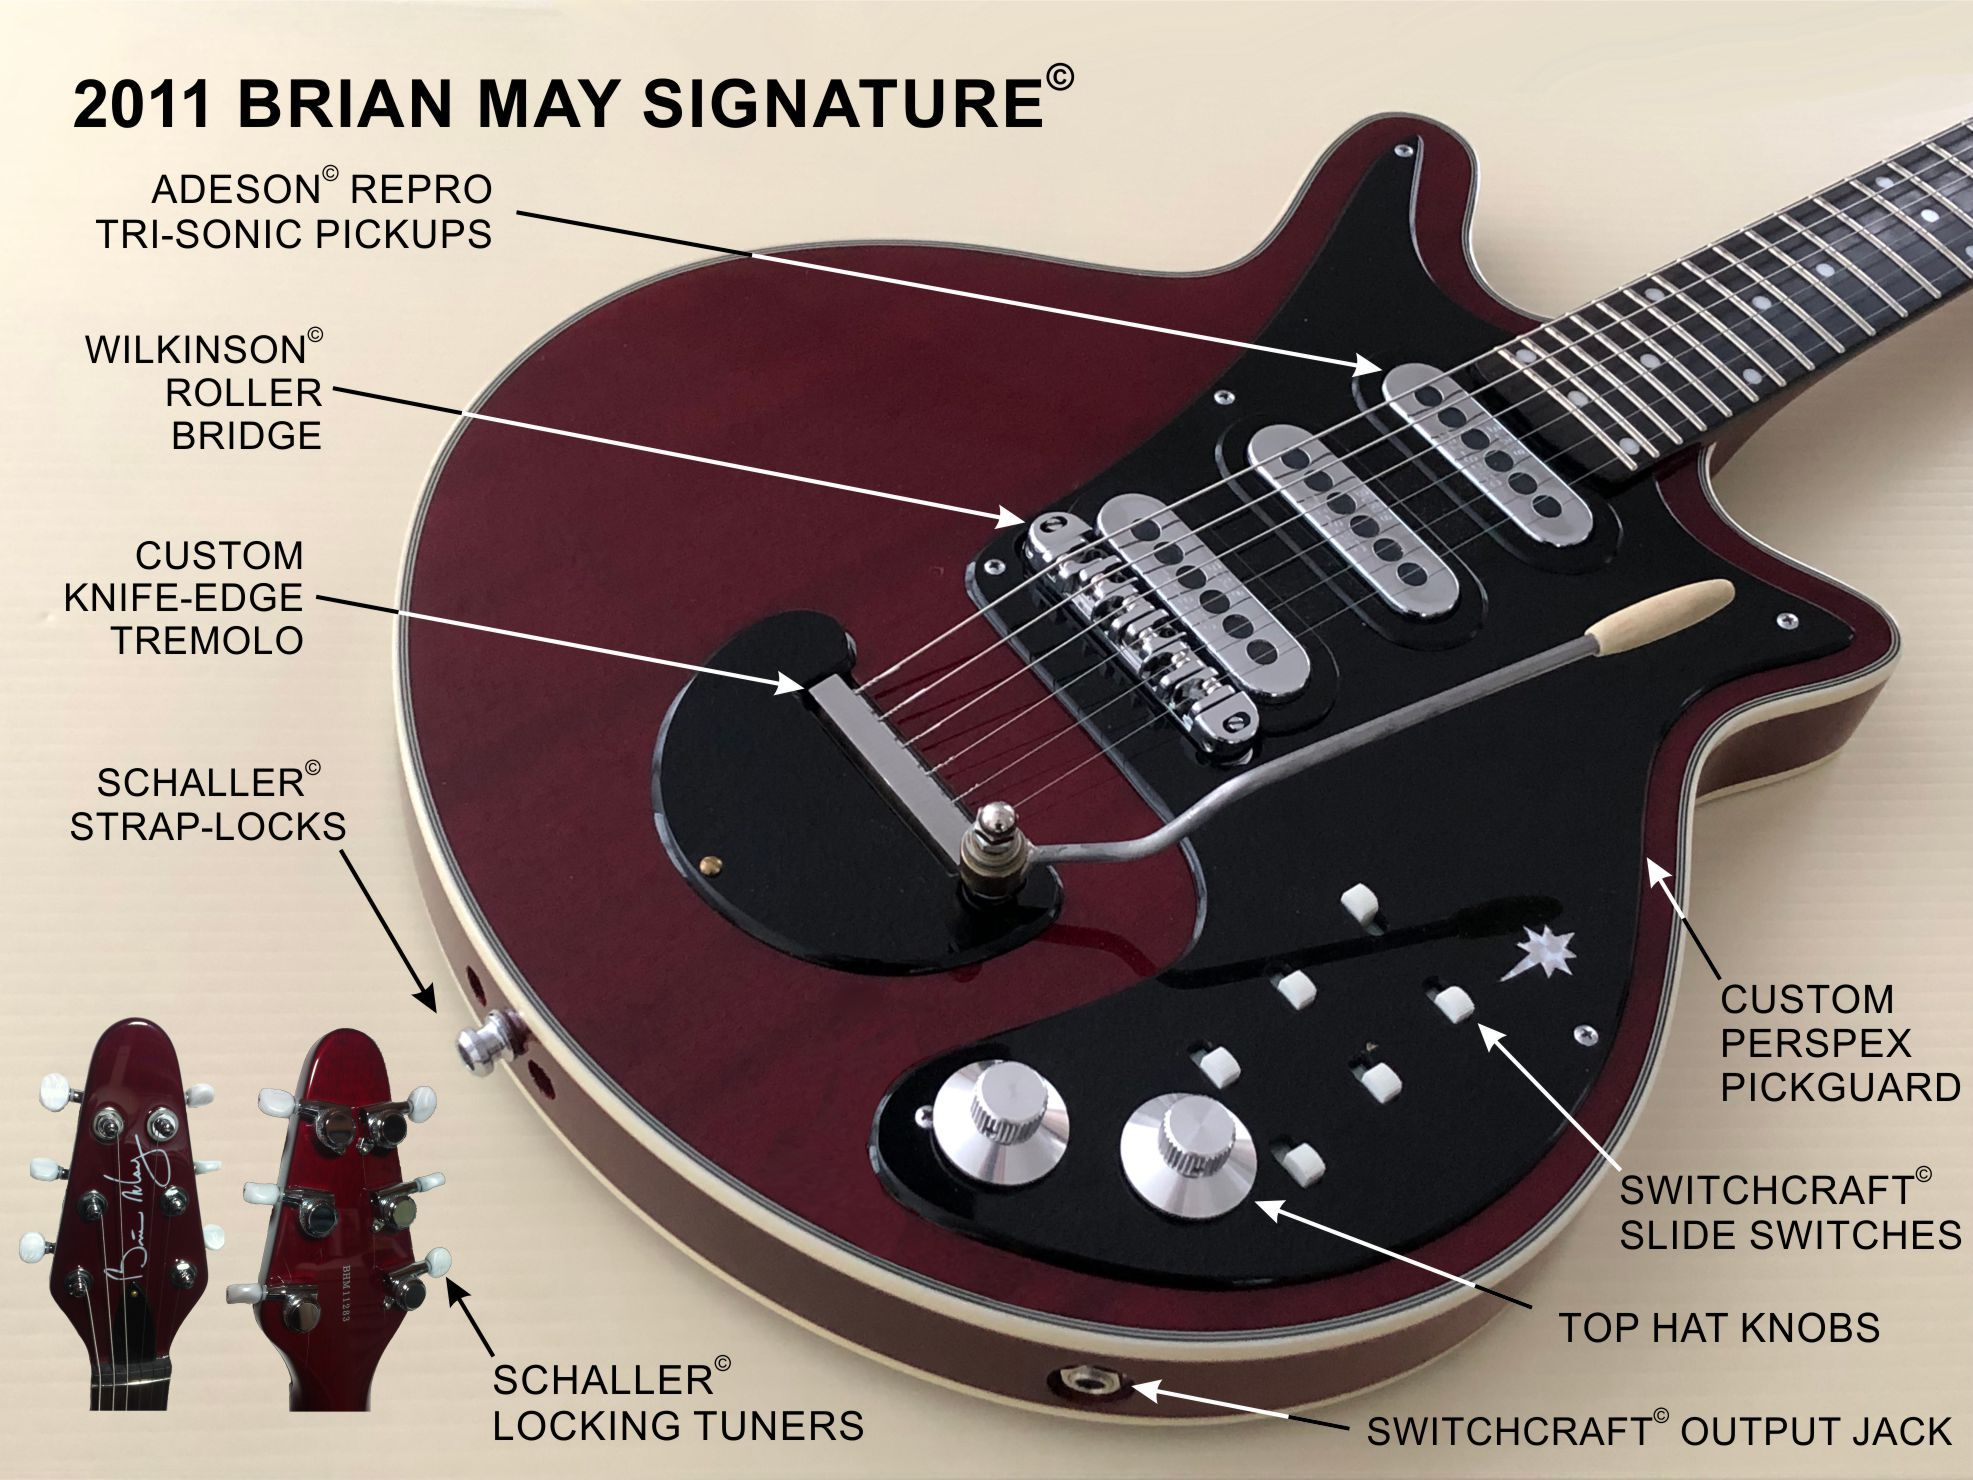 Brian May Wiring 3 Switches Schematic Diagrams Guitar Diagram Guitars For Way Switch And 2 Lights